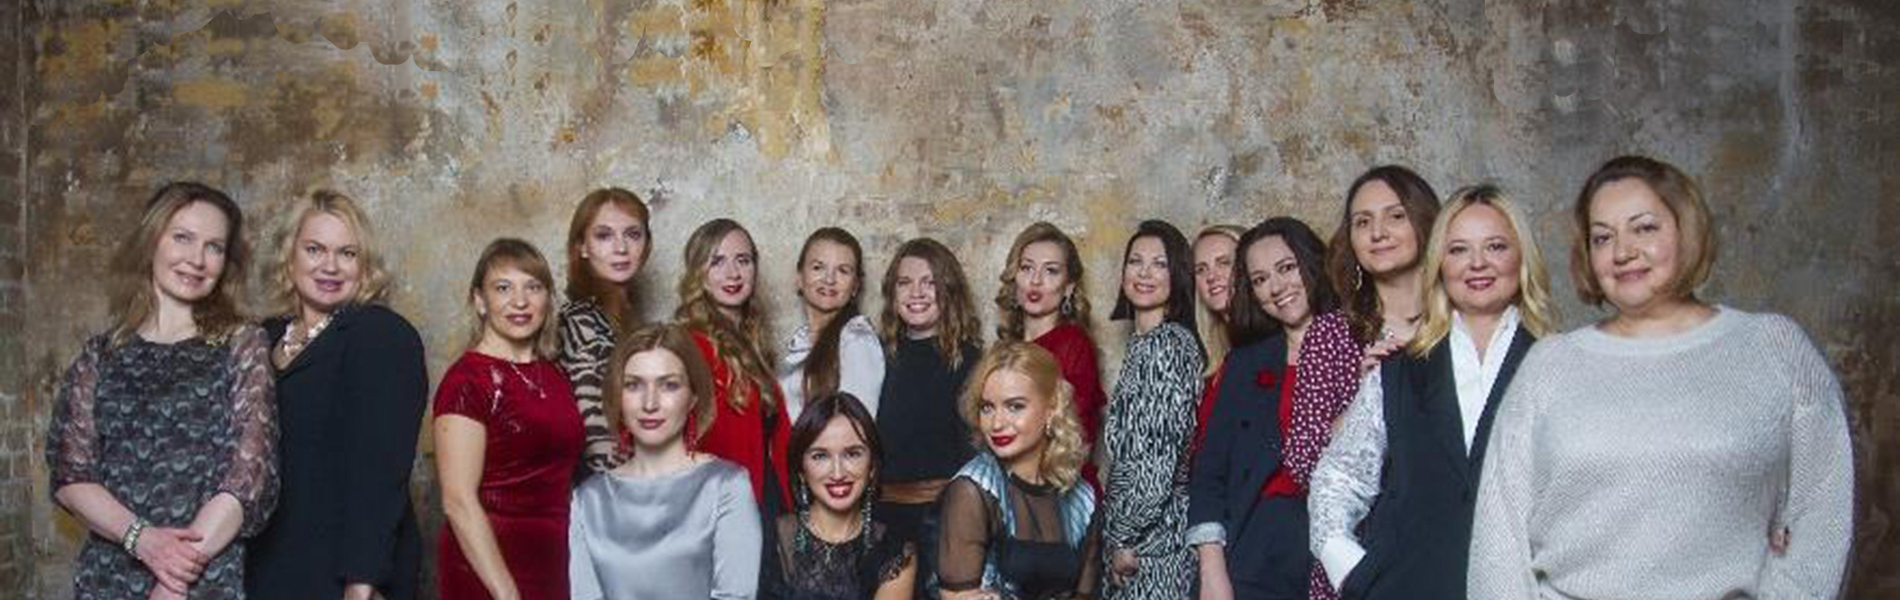 Women's Initiative – Pharma Ladies in Russia